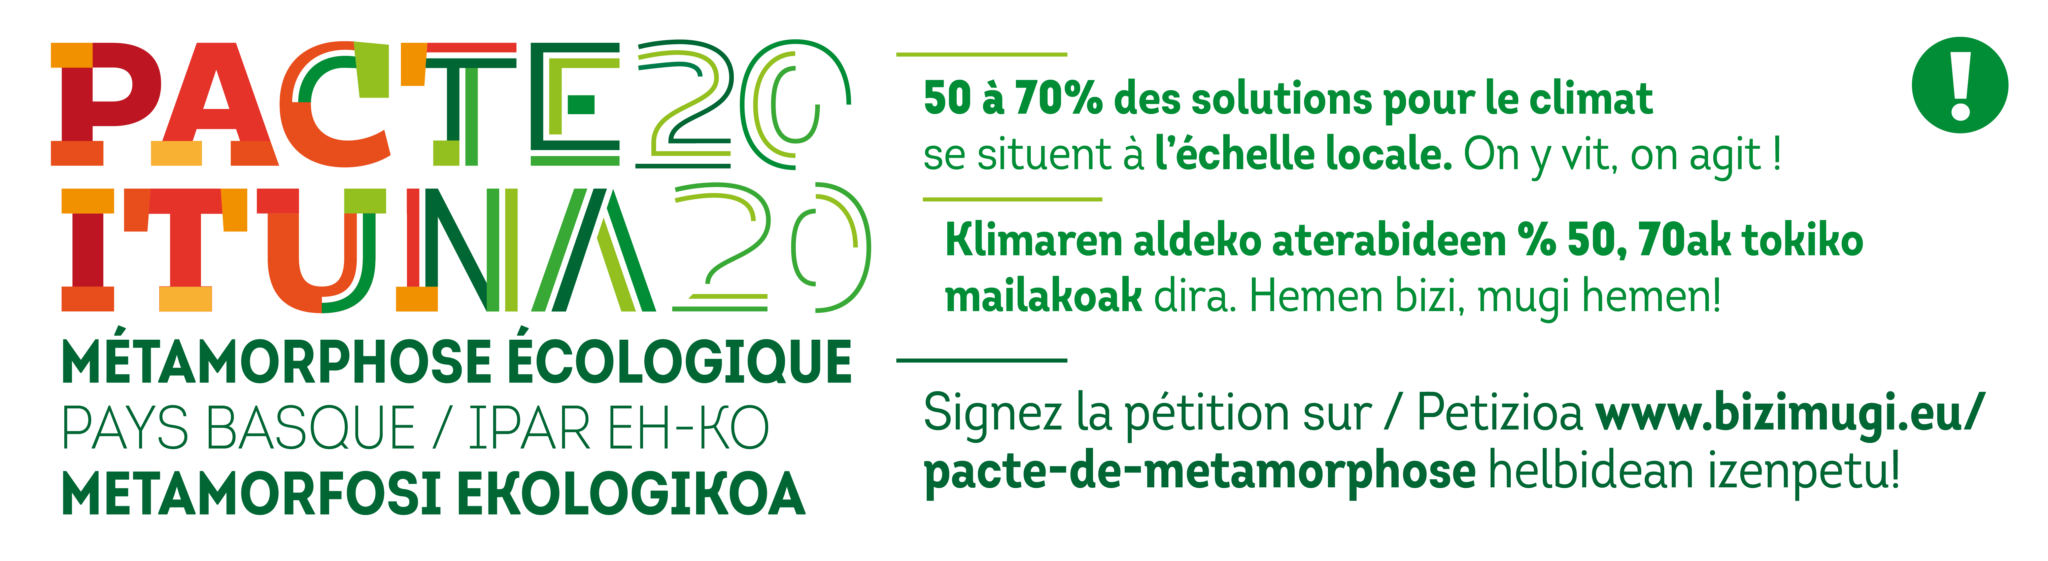 Siteweb-PACTE-ITUNA20-Pétition